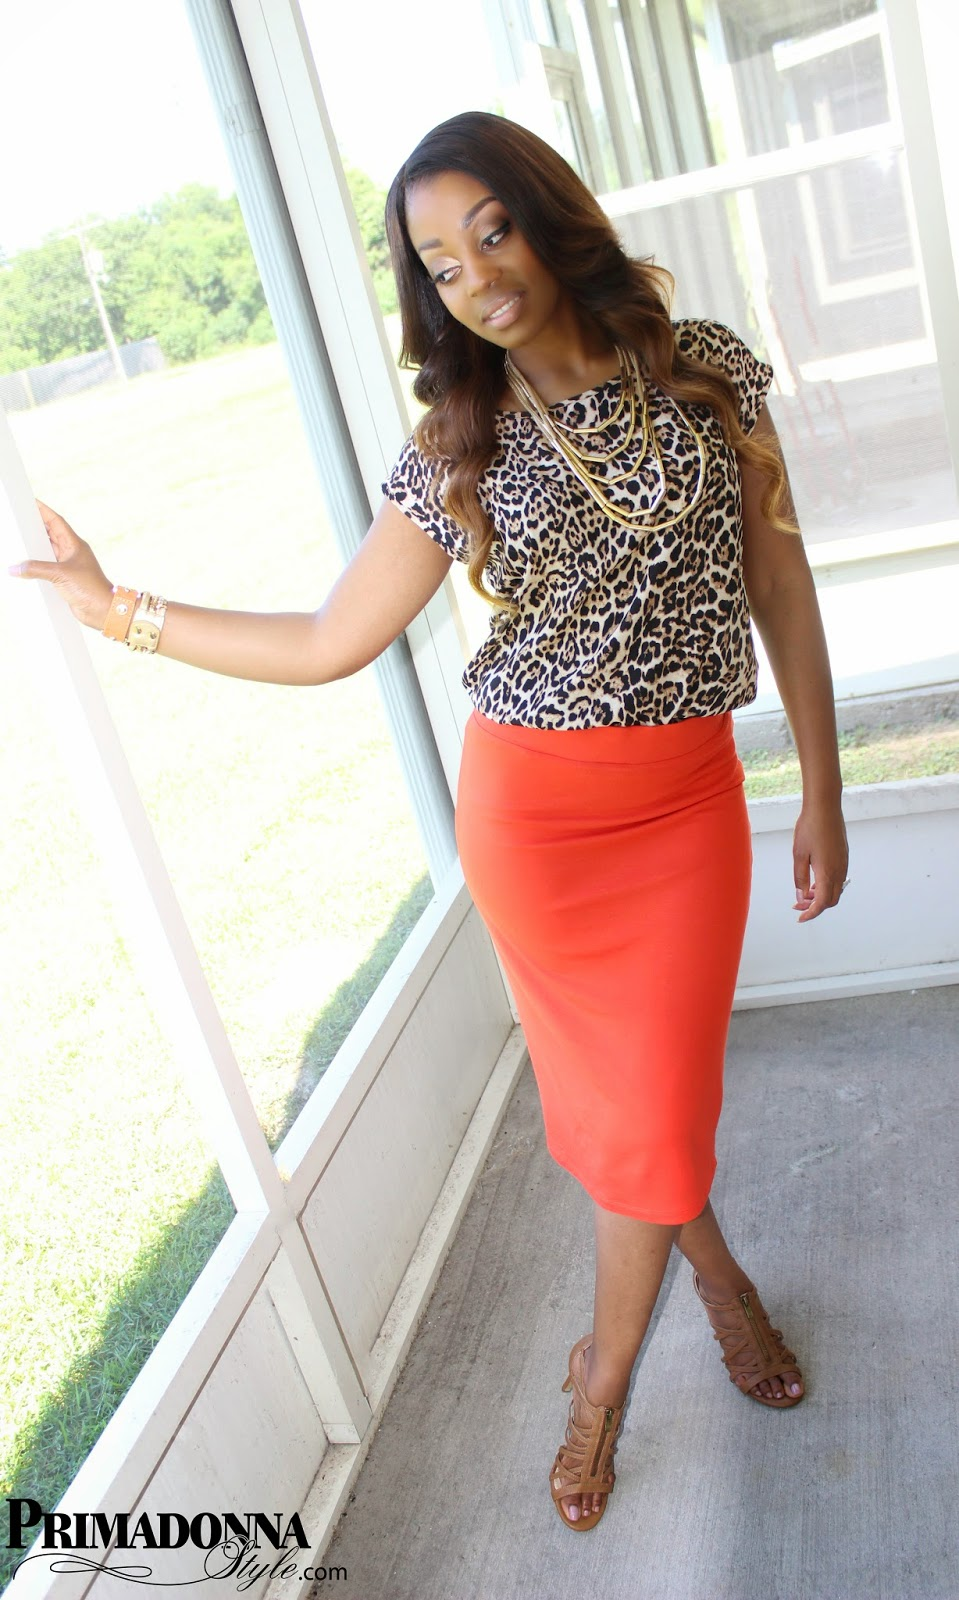 Love & Haight Hi-Low Animal Print Top Apt. 9 (Tangerine Tango) Midi Pencil Skirt Rampage Carnival Sandal (Tan) Forever 21 Sleek Layered Necklace Rampage Carnival Sandals Tan BCBGeneration Affirmation Bracelet Capsule by Cara Bracelet Brazillian Ombre Hair